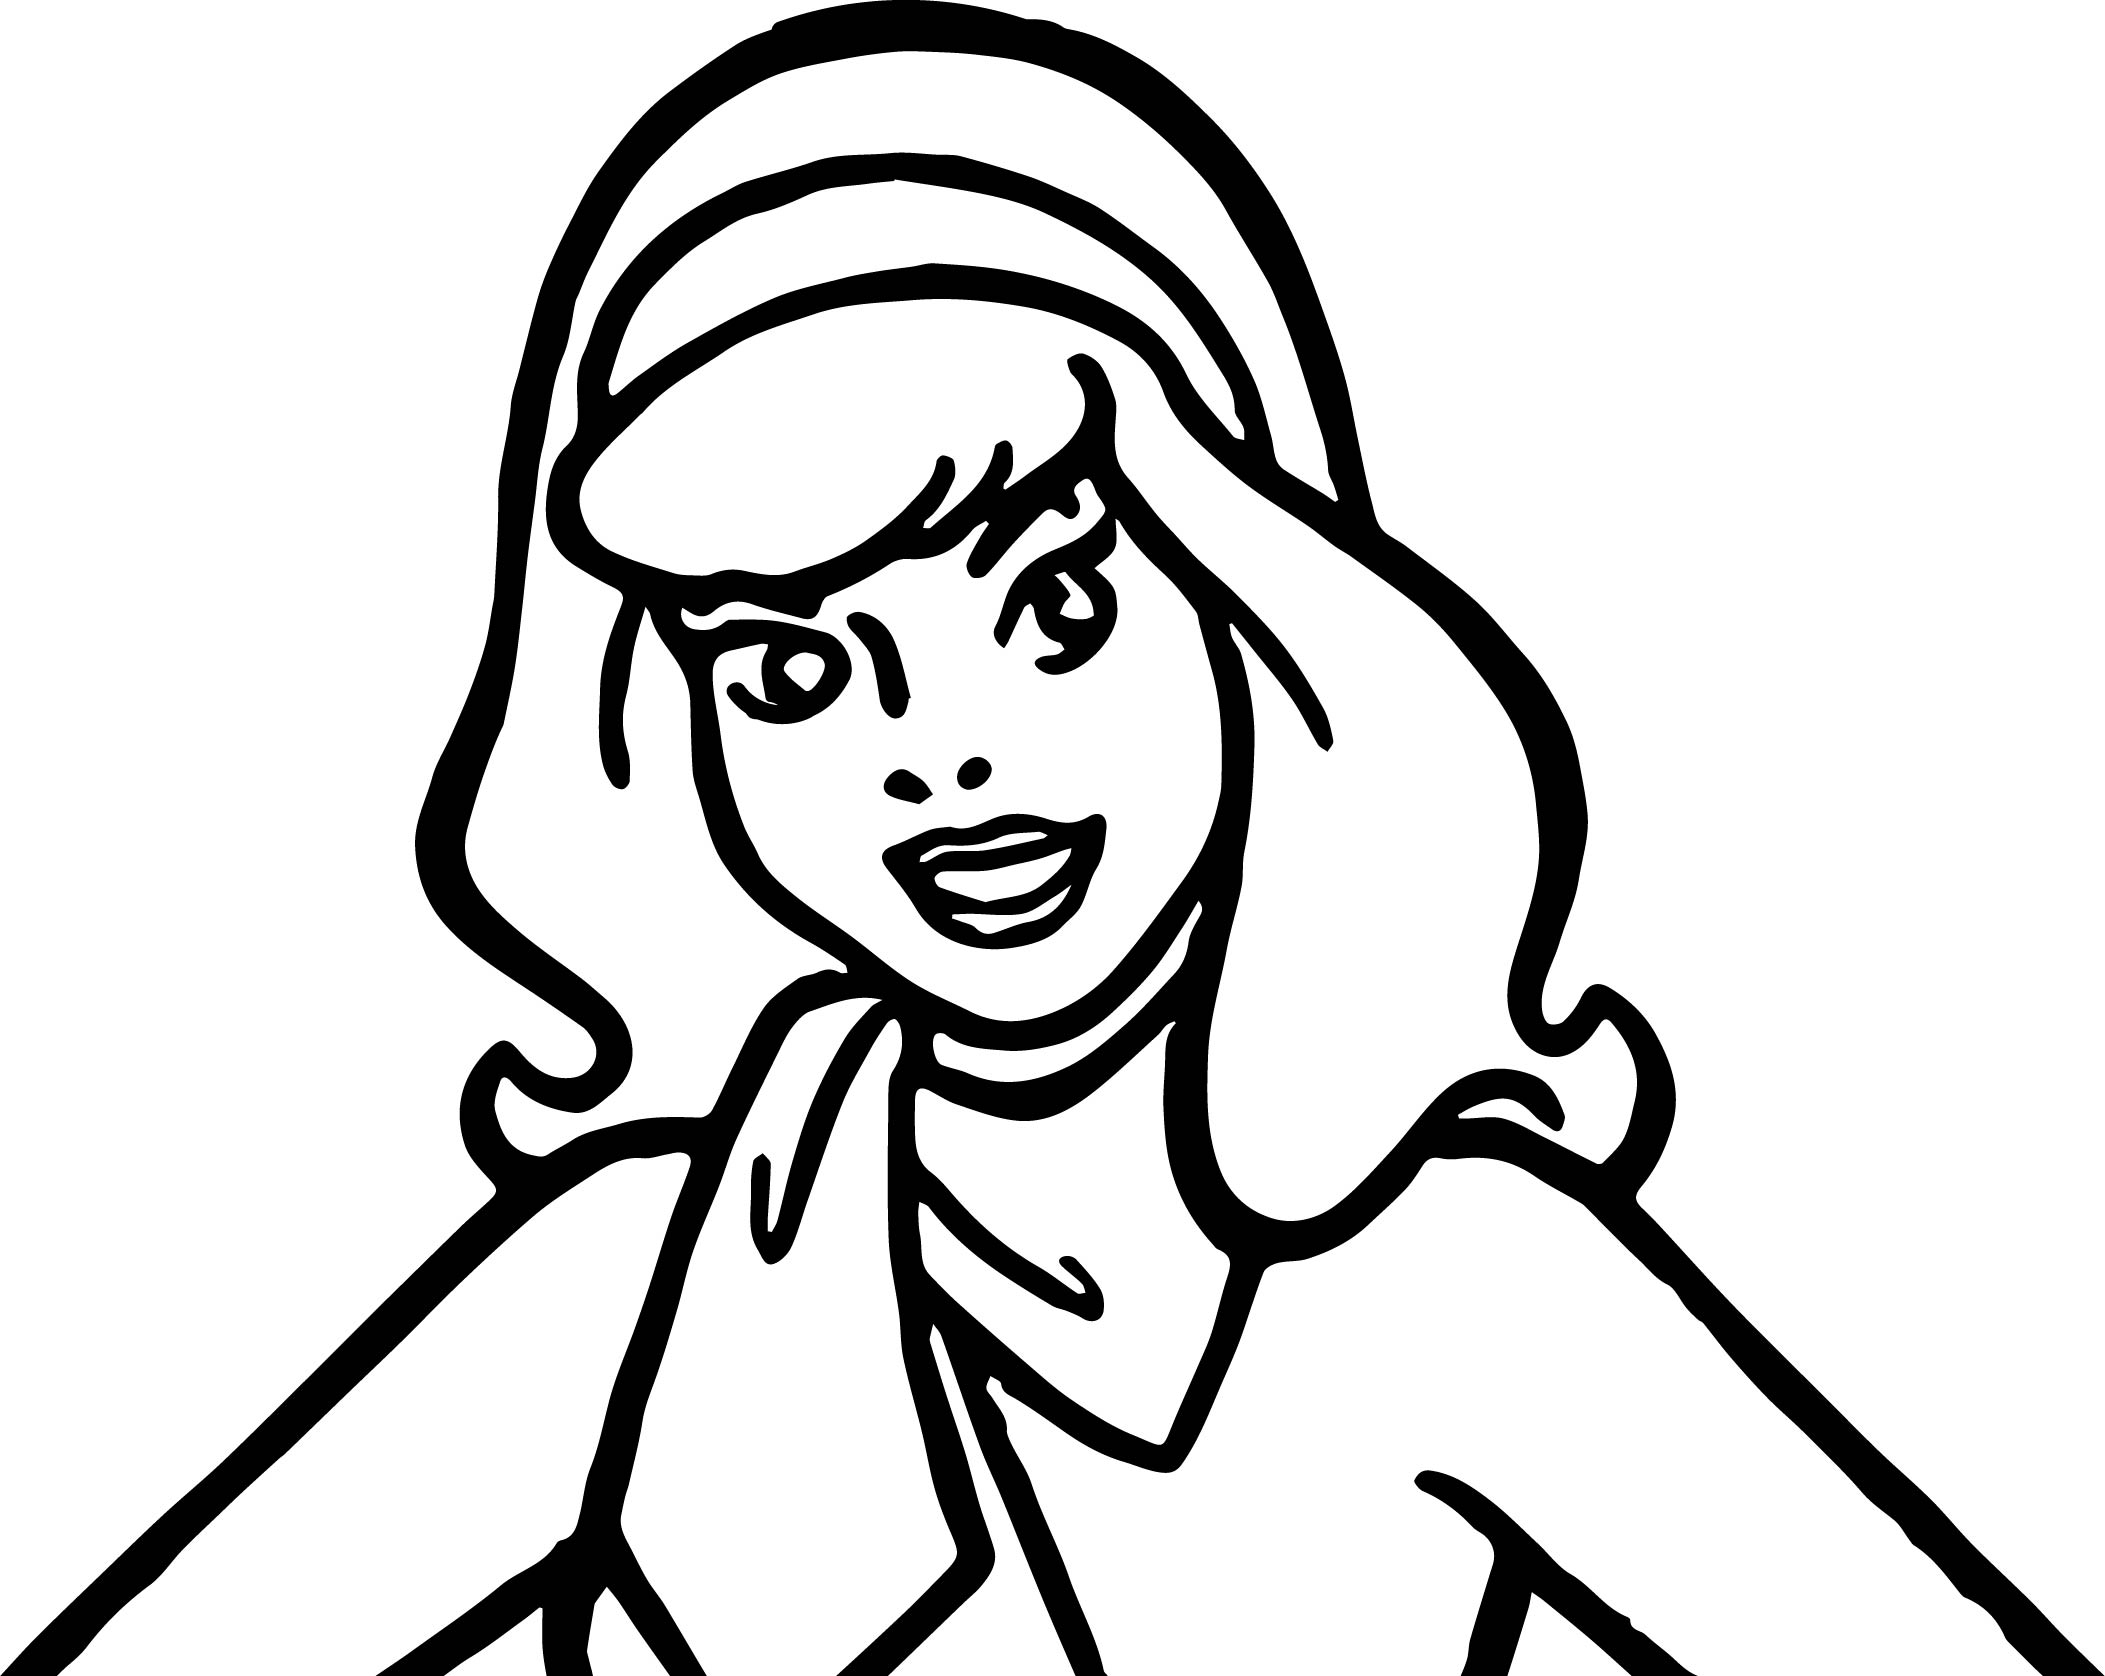 daphne scooby doo make up coloring page - Make Coloring Pages